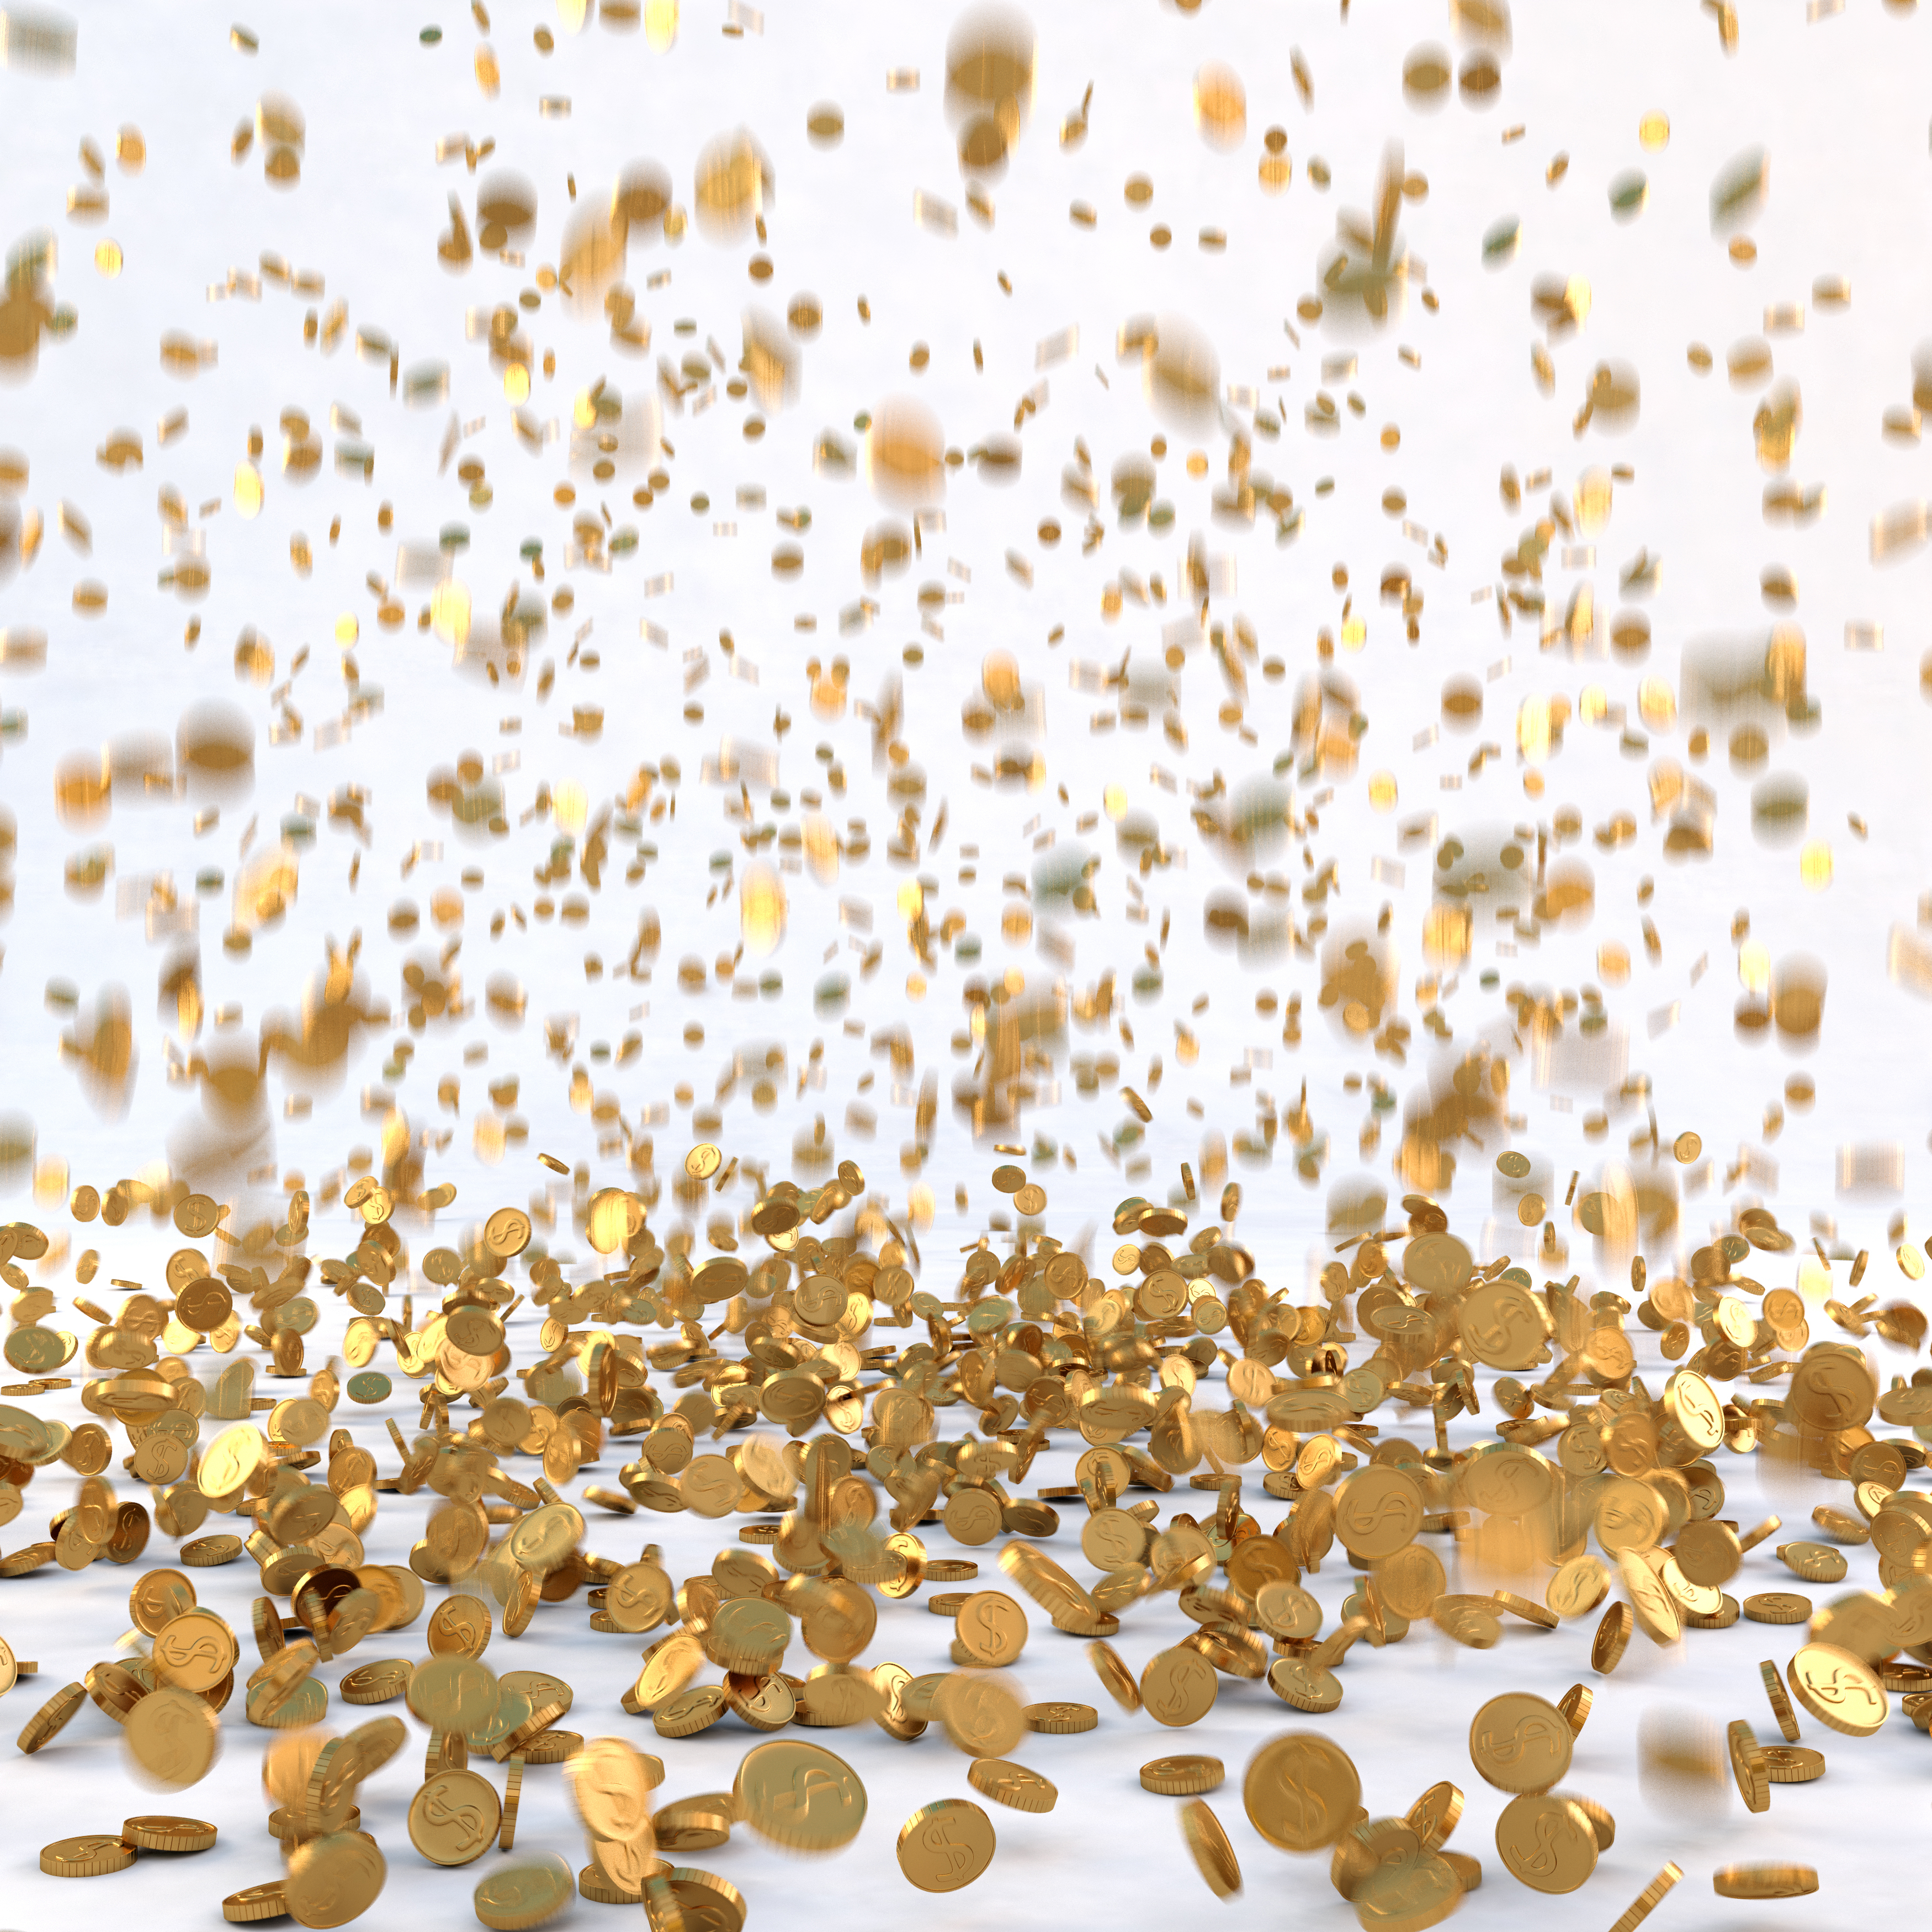 Falling Money Hd Wallpaper Gold Coins From Sky America And The Global Economy